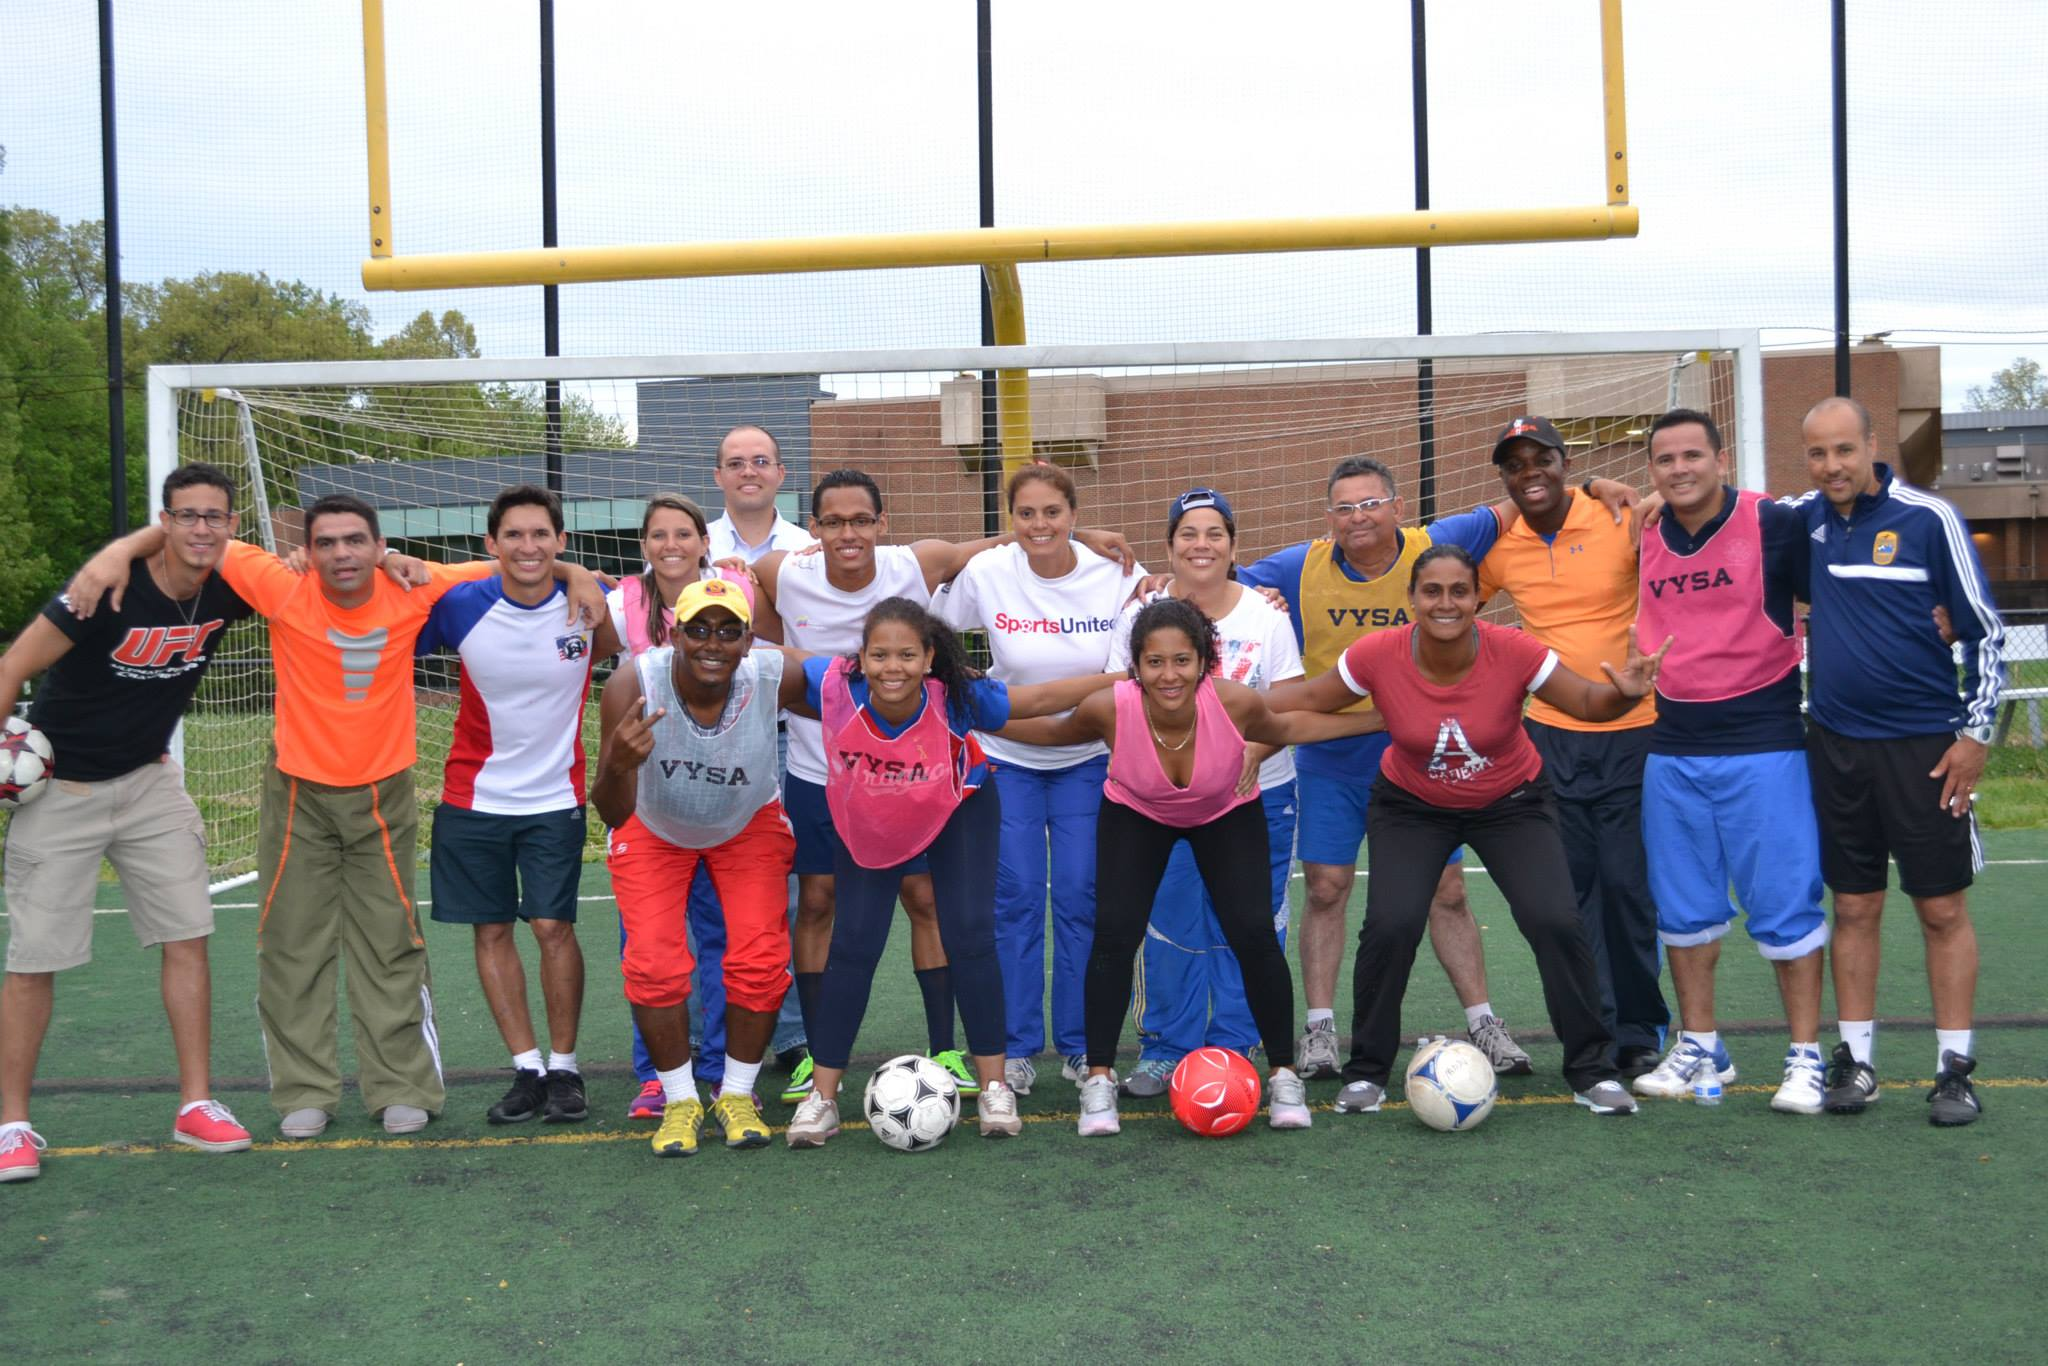 Group photo after the completion of the U.S. Soccer Federation F Certification